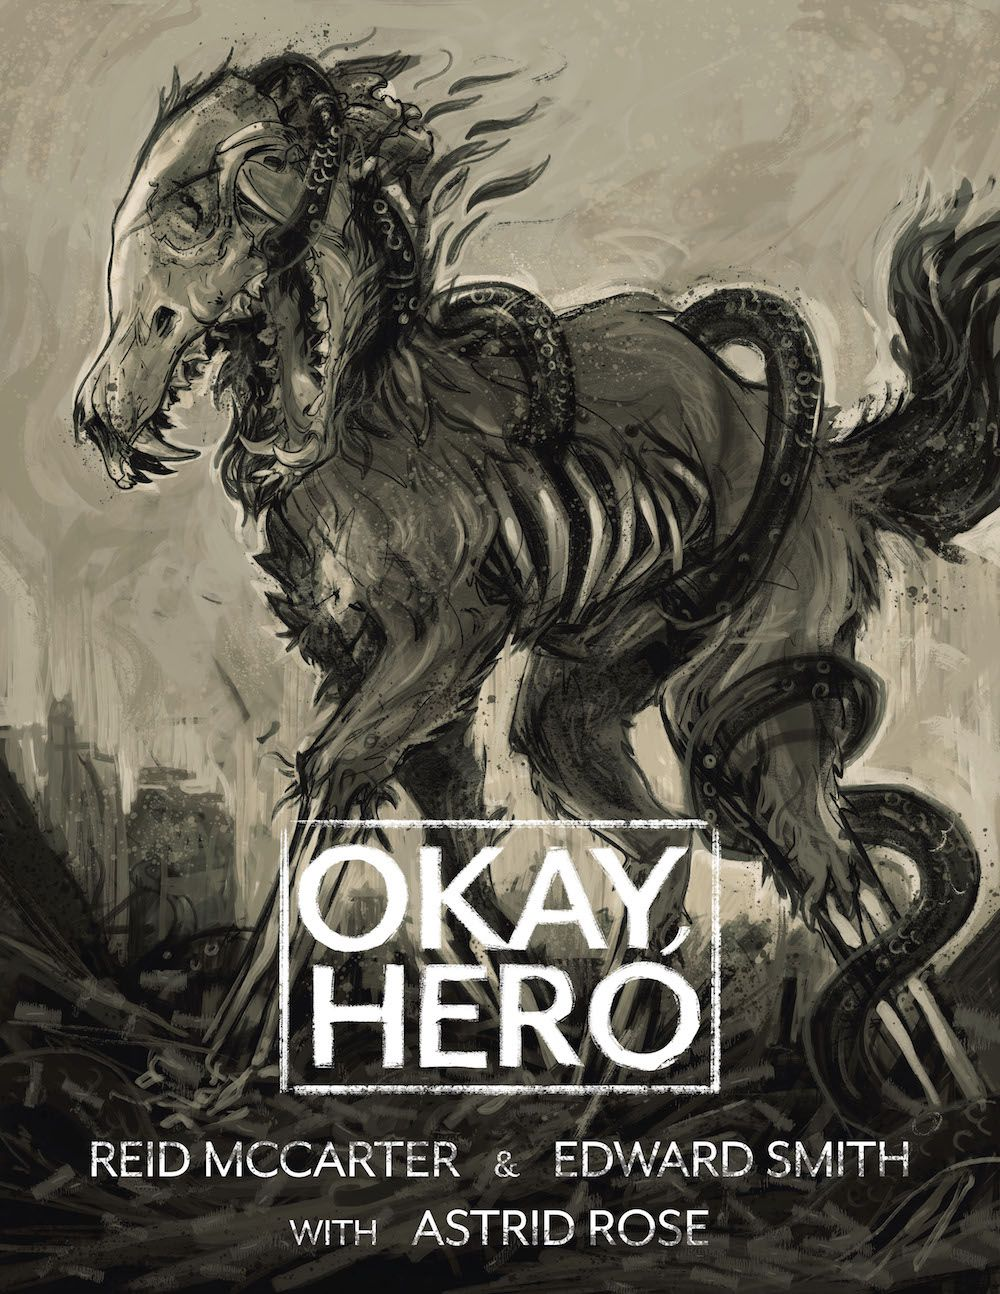 cover artwork for Okay, Hero, with a skeletal horselike creature on it